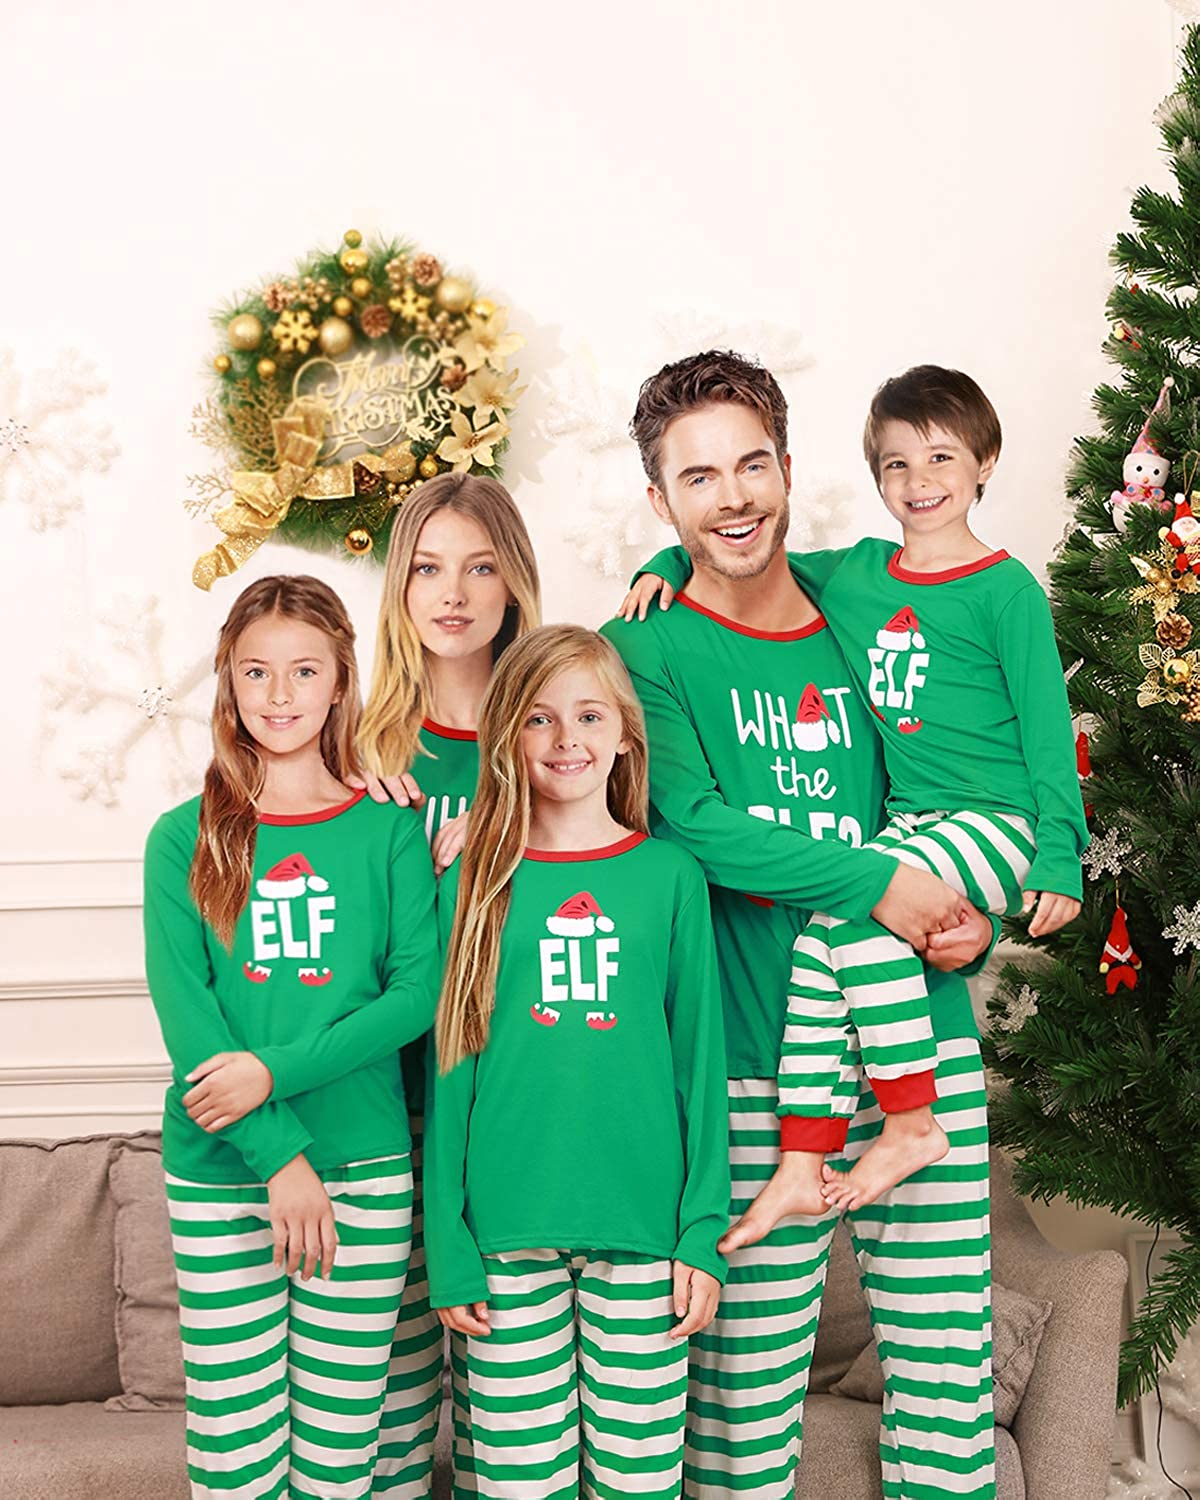 becdbcece0 Amazon.com  Rnxrbb Holiday Christmas Pajamas Family Matching Pjs Set Xmas  Jammies for Couples and Kids Green Cotton  Clothing